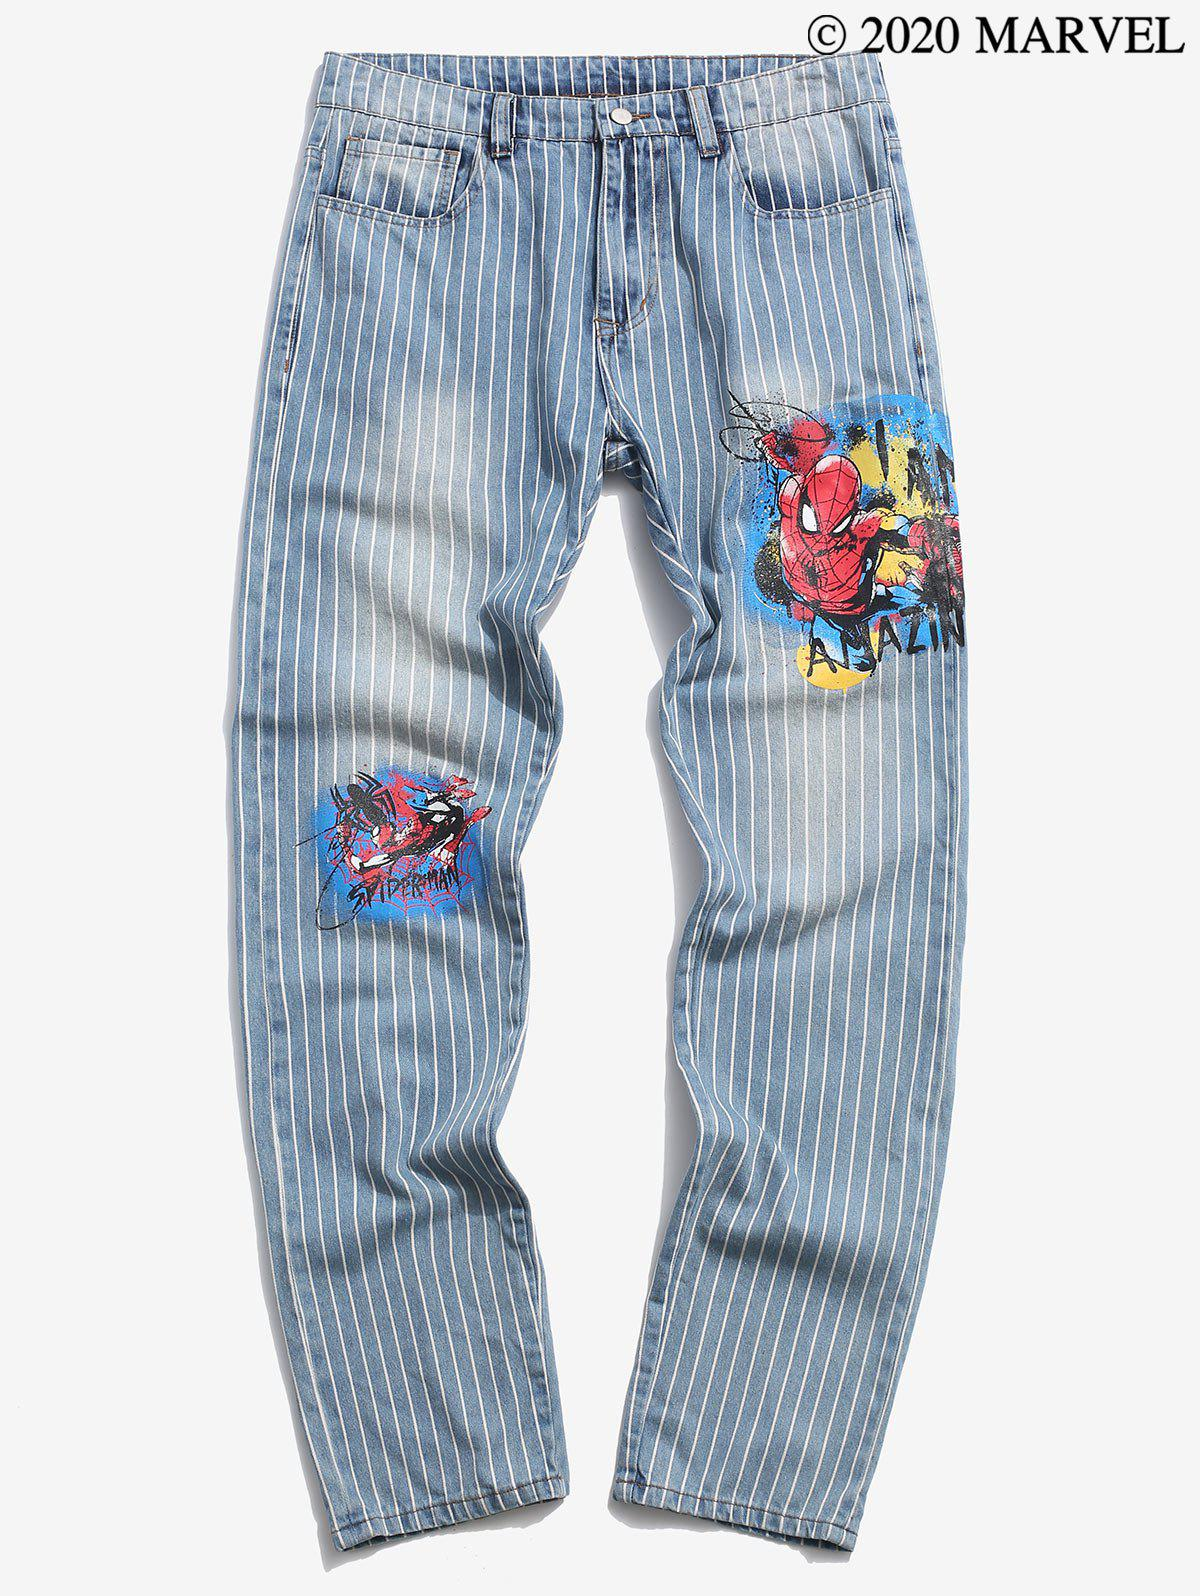 Marvel Spider-Man Graphic Pinstriped Casual Jeans - LIGHT BLUE 2XL